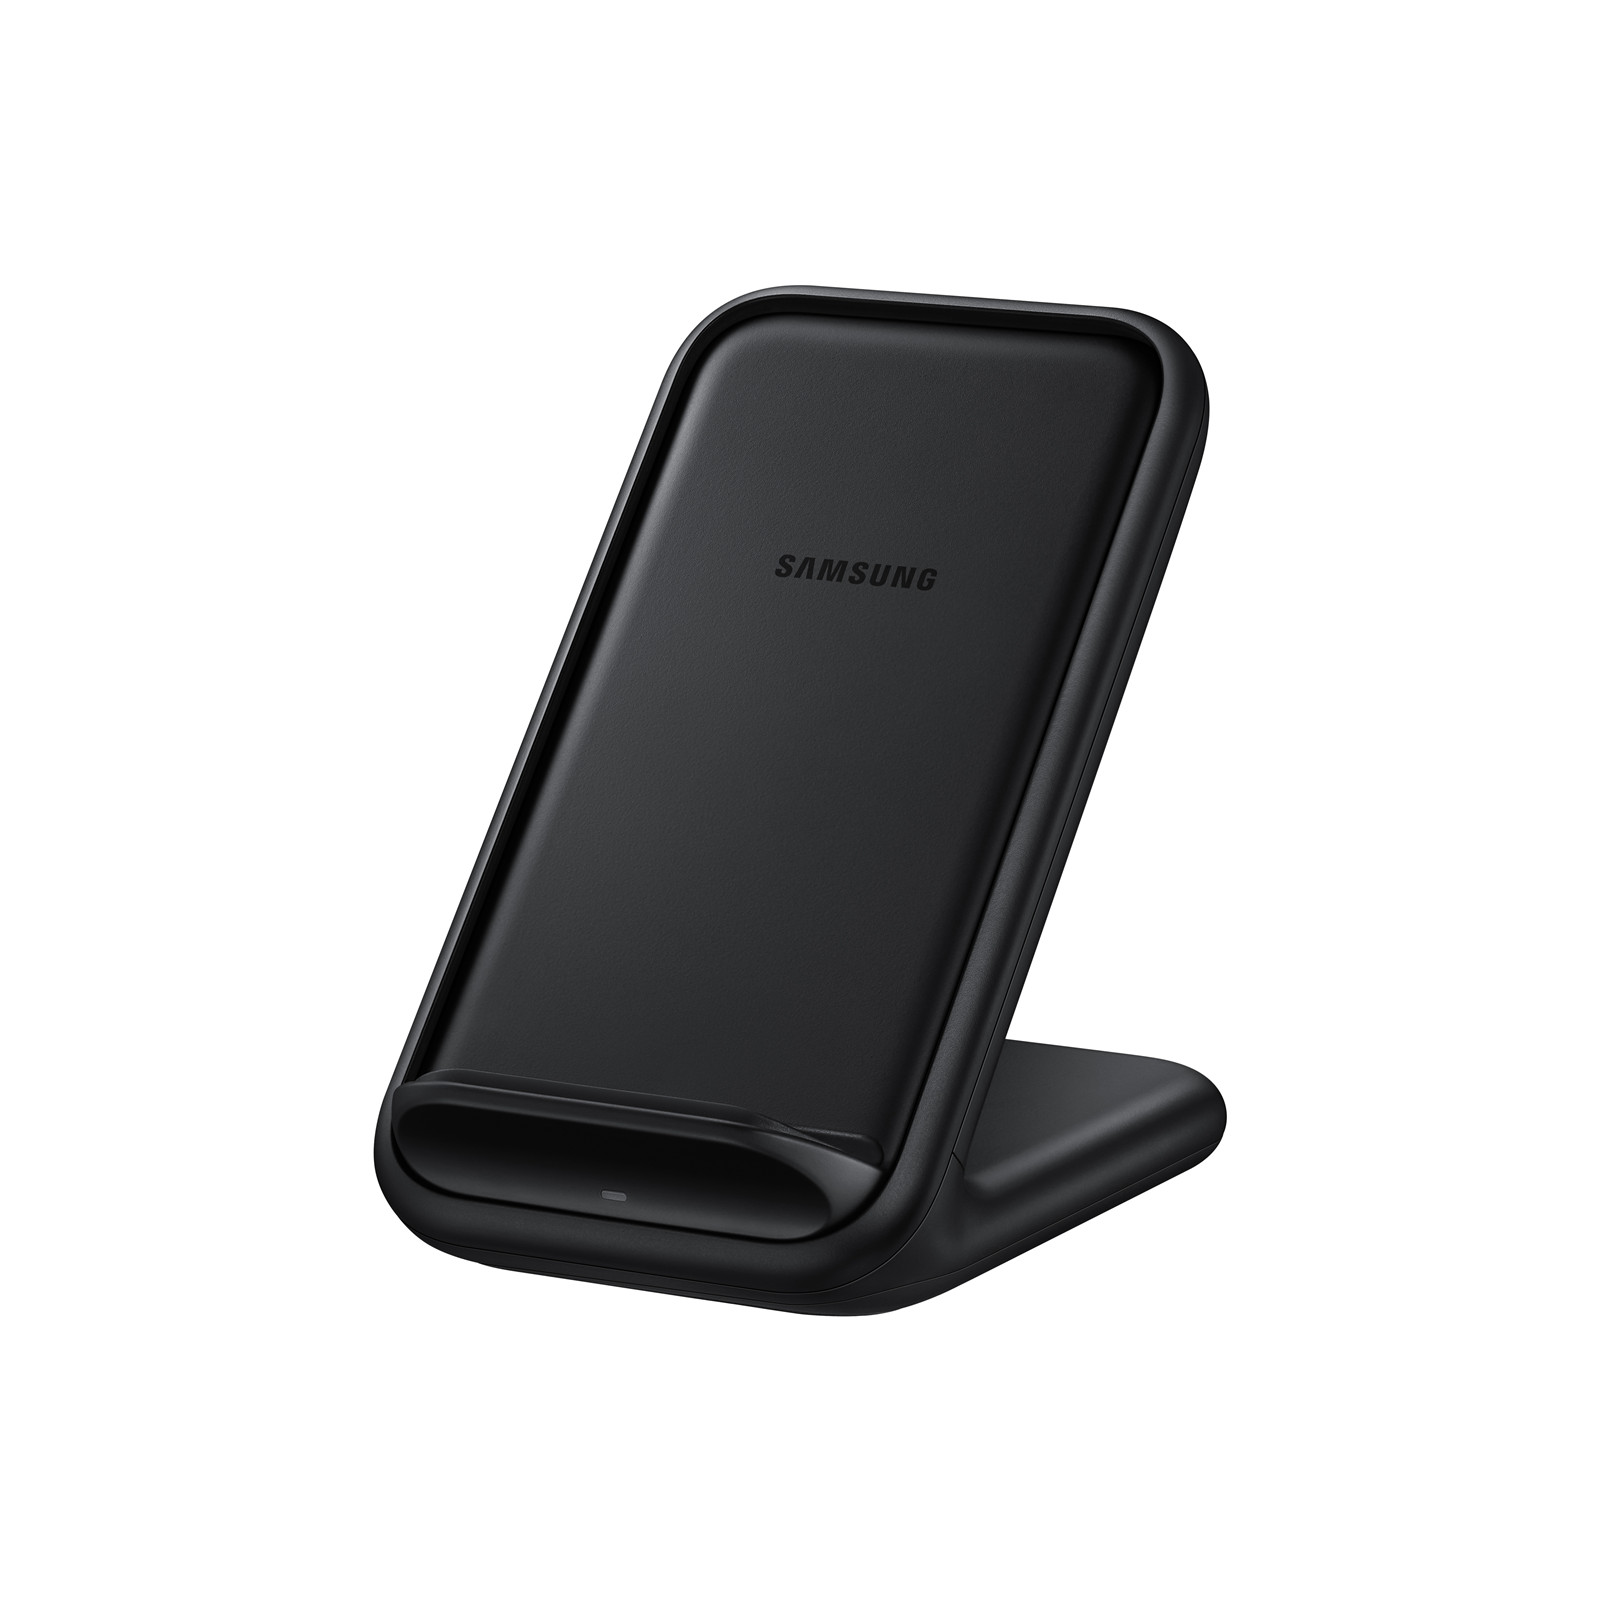 WIRELESS SAMSUNG CHARGER STAND